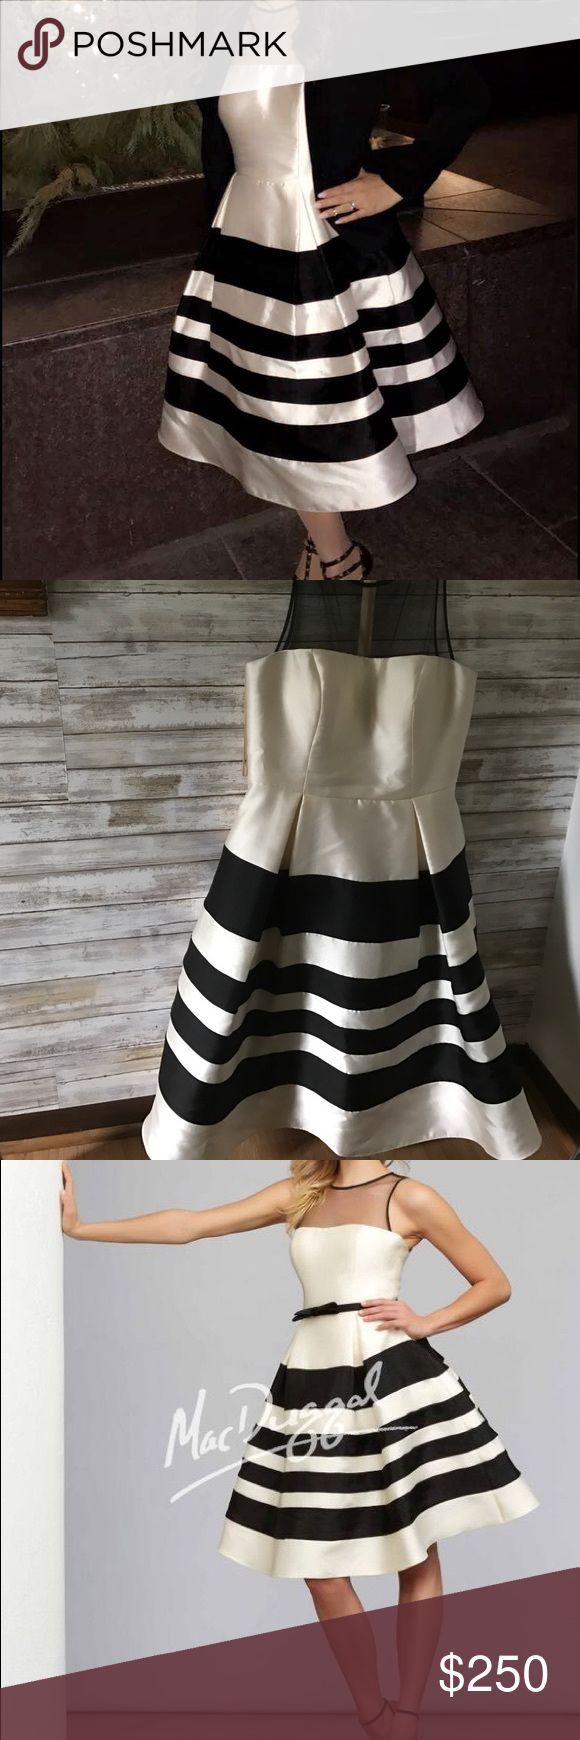 Black and cream tea length Mac Duggal size 8 Parisian style dress! Great for cocktail parties!  Only worn once! mac duggal Dresses